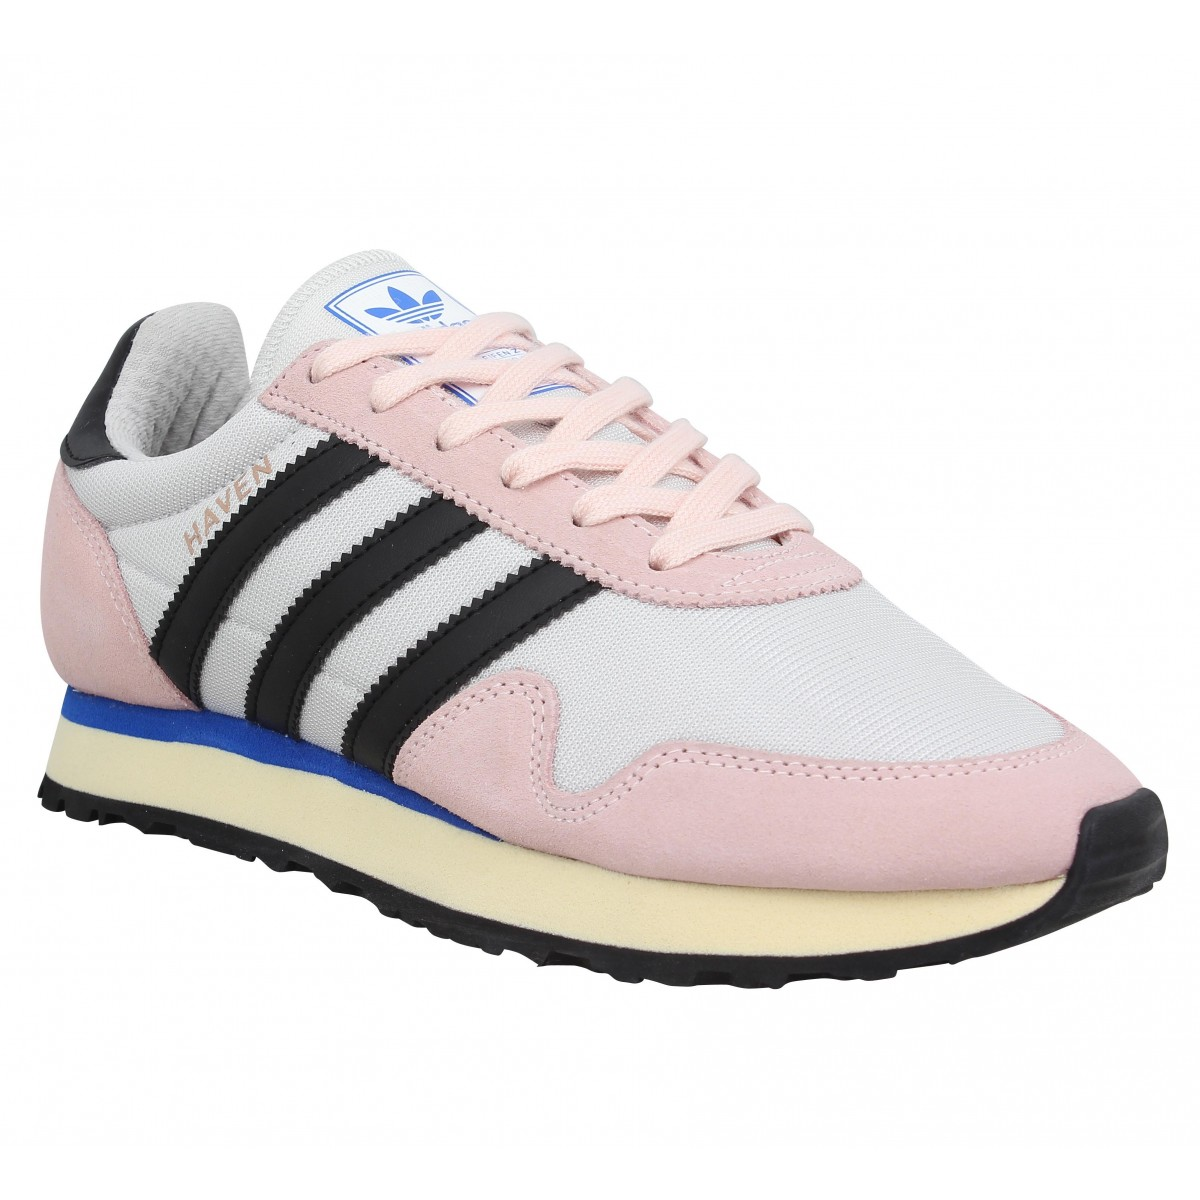 Adidas Femme Haven Toile -36-rose